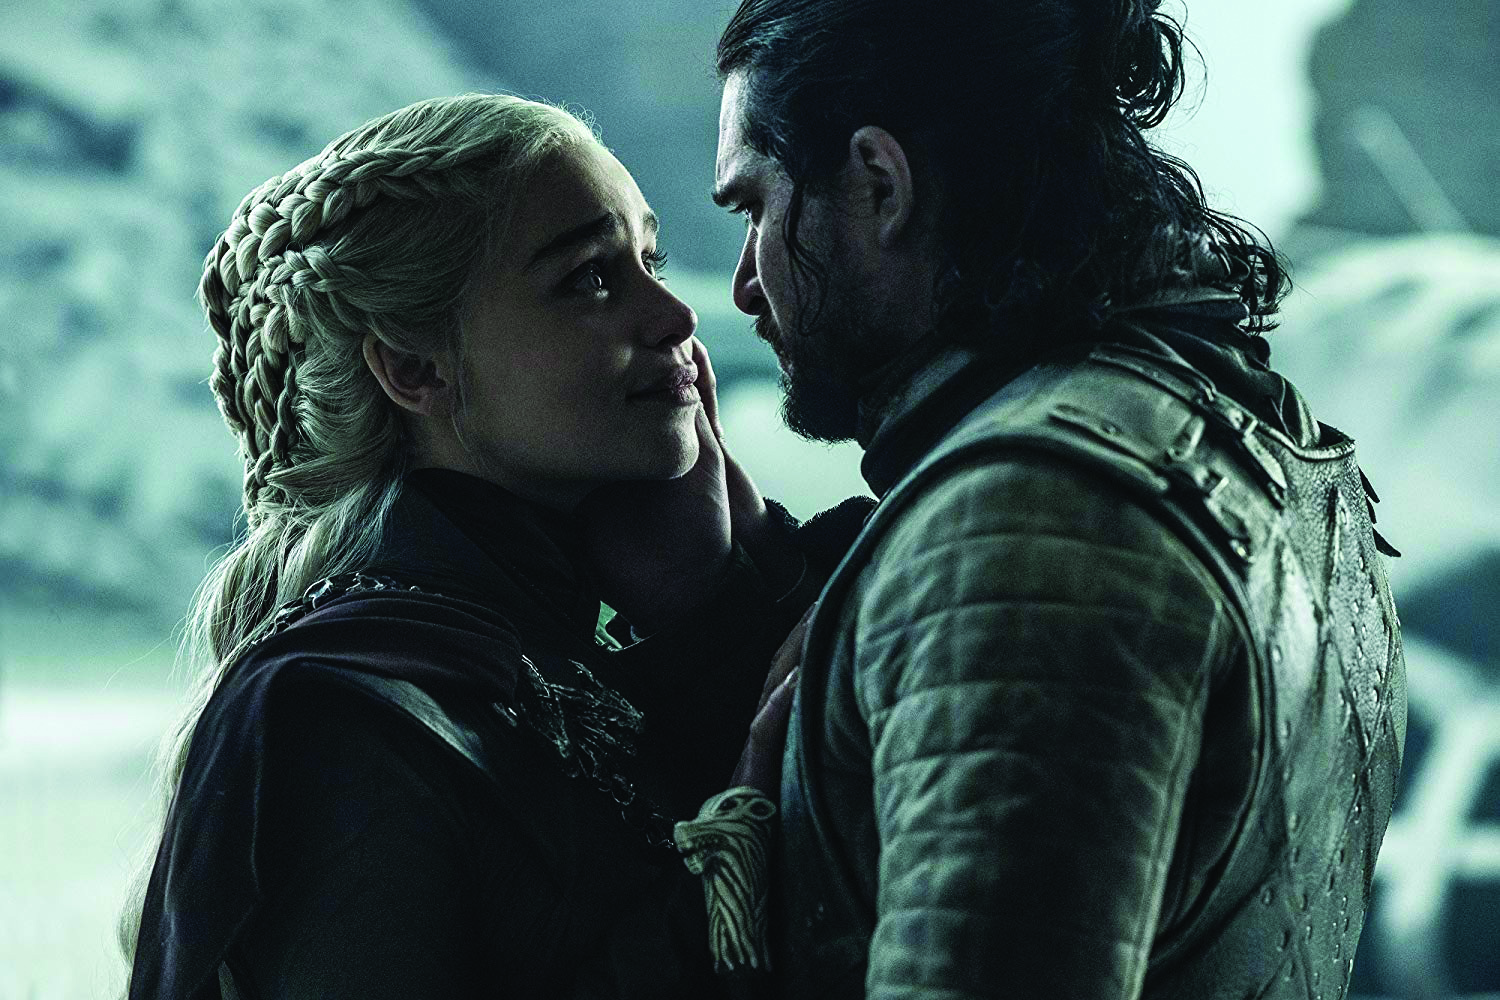 Unknowingly, Daenerys (Emilia Clarke) takes one last look at her lover before he kills her.